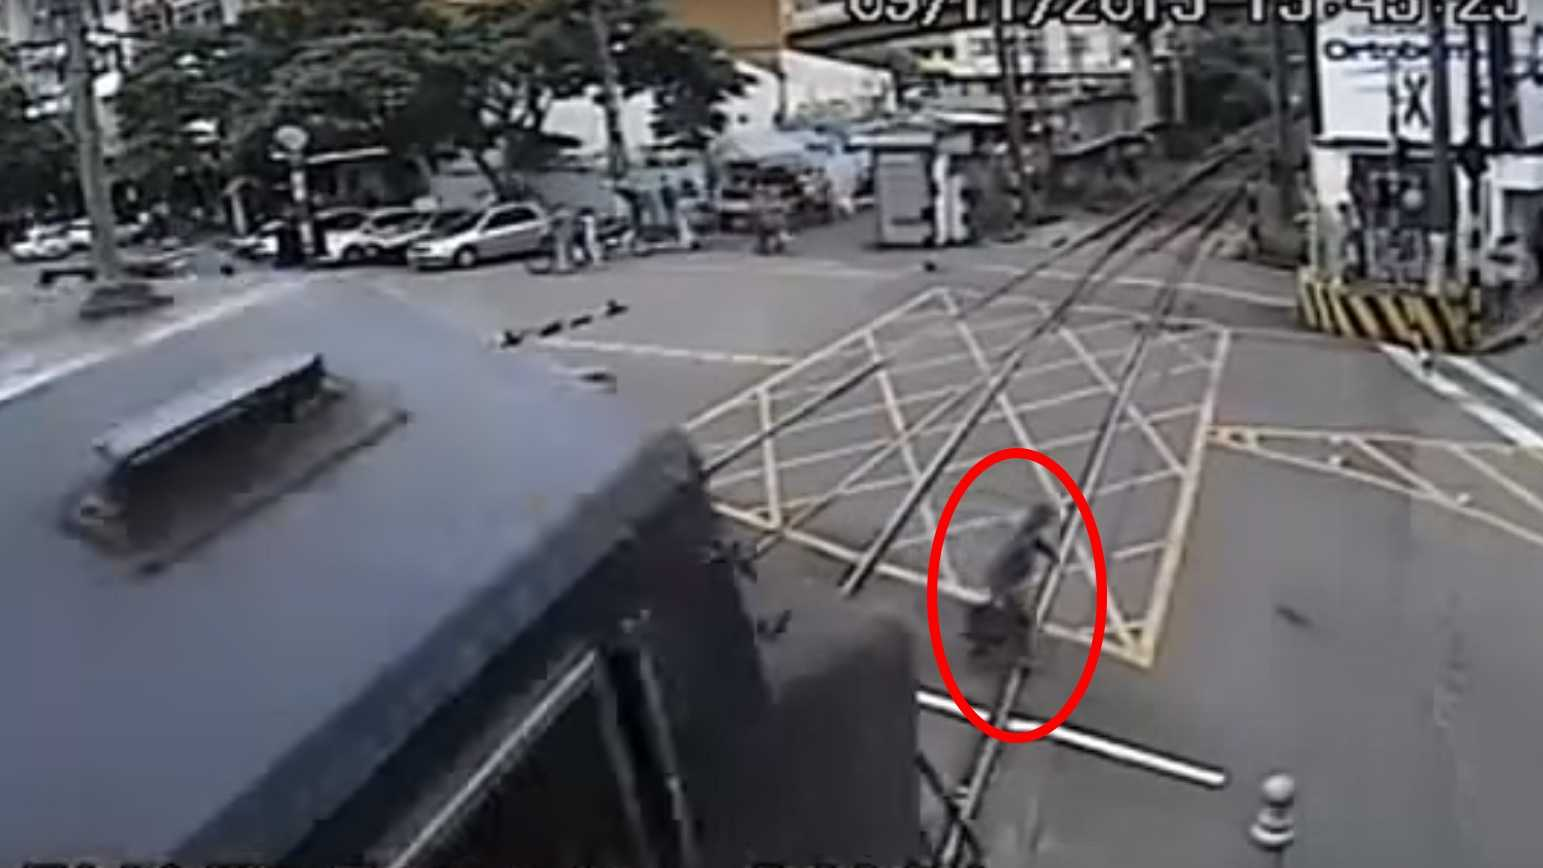 Elderly man seen on surveillance camera nearly gets hit by train in Brazil. Photo is a screen grab of the video.